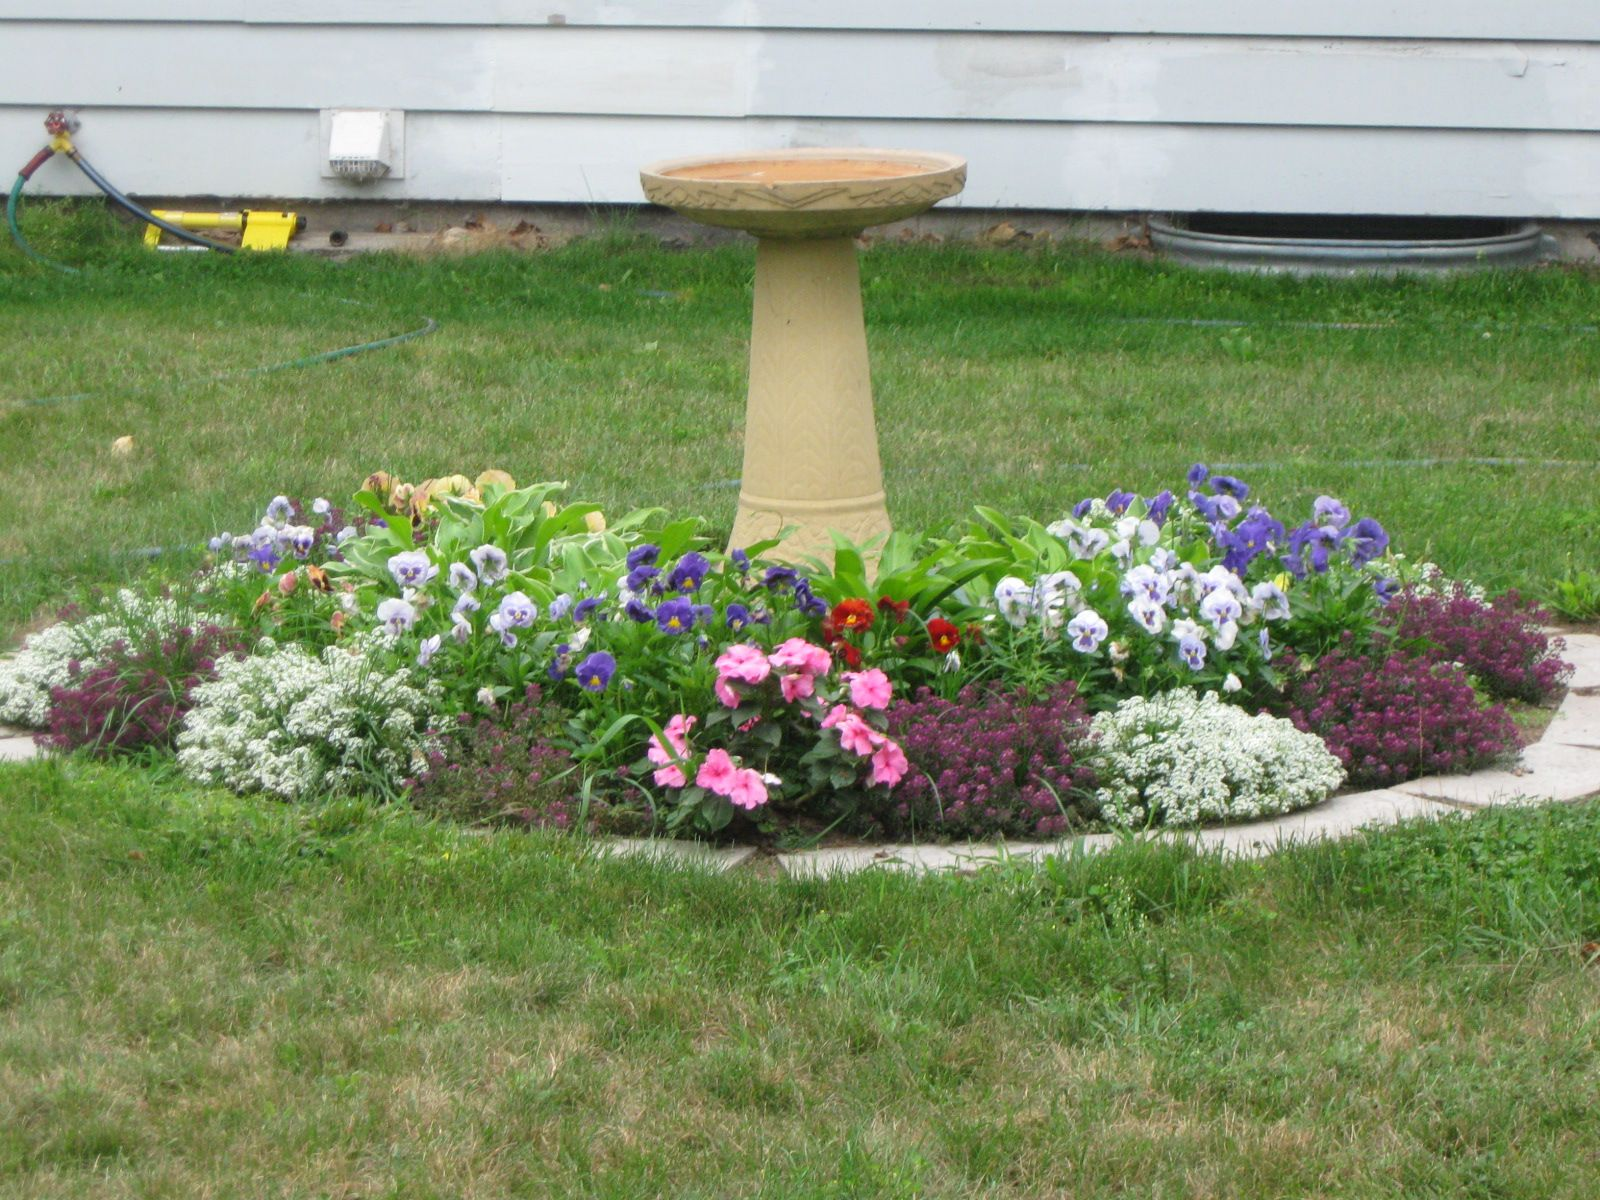 Landscaping Over A Septic Tank : Flowers growing around our septic tank cover the bird bath sits on